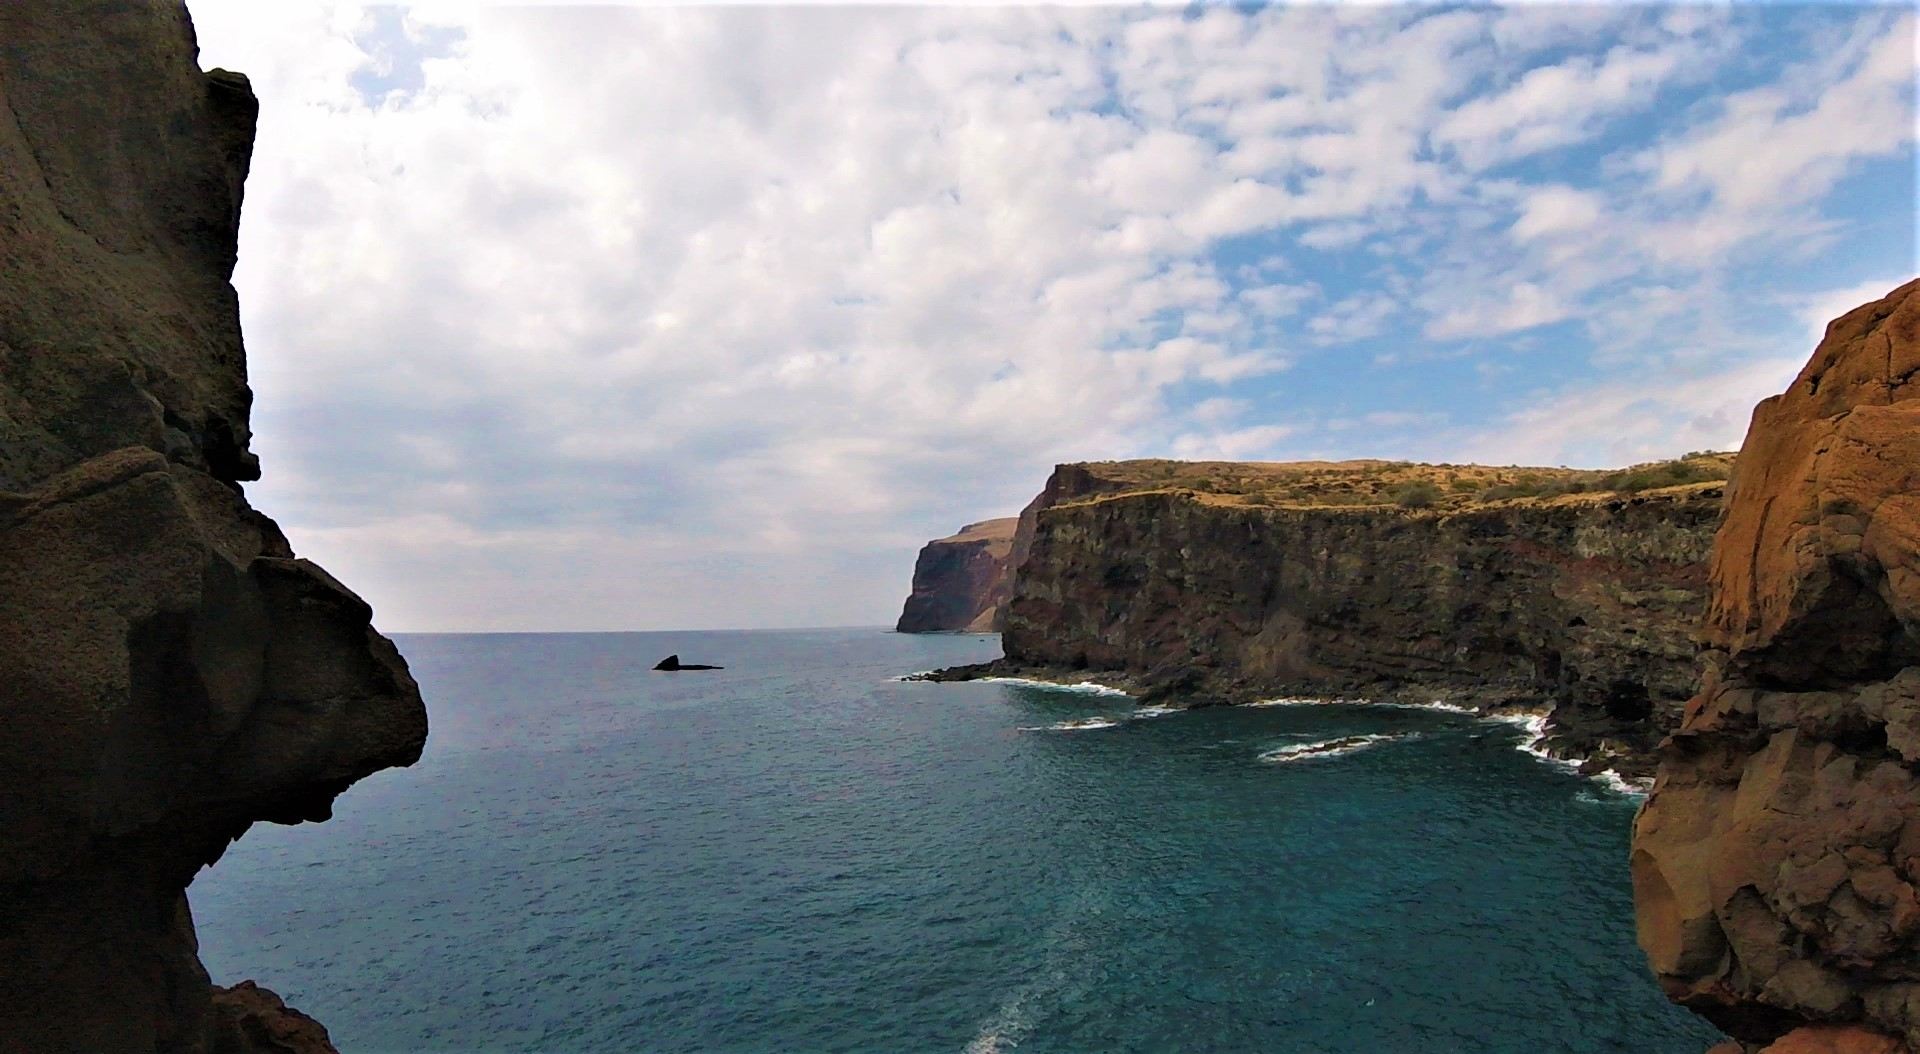 Lanai, Hawaii cliffs